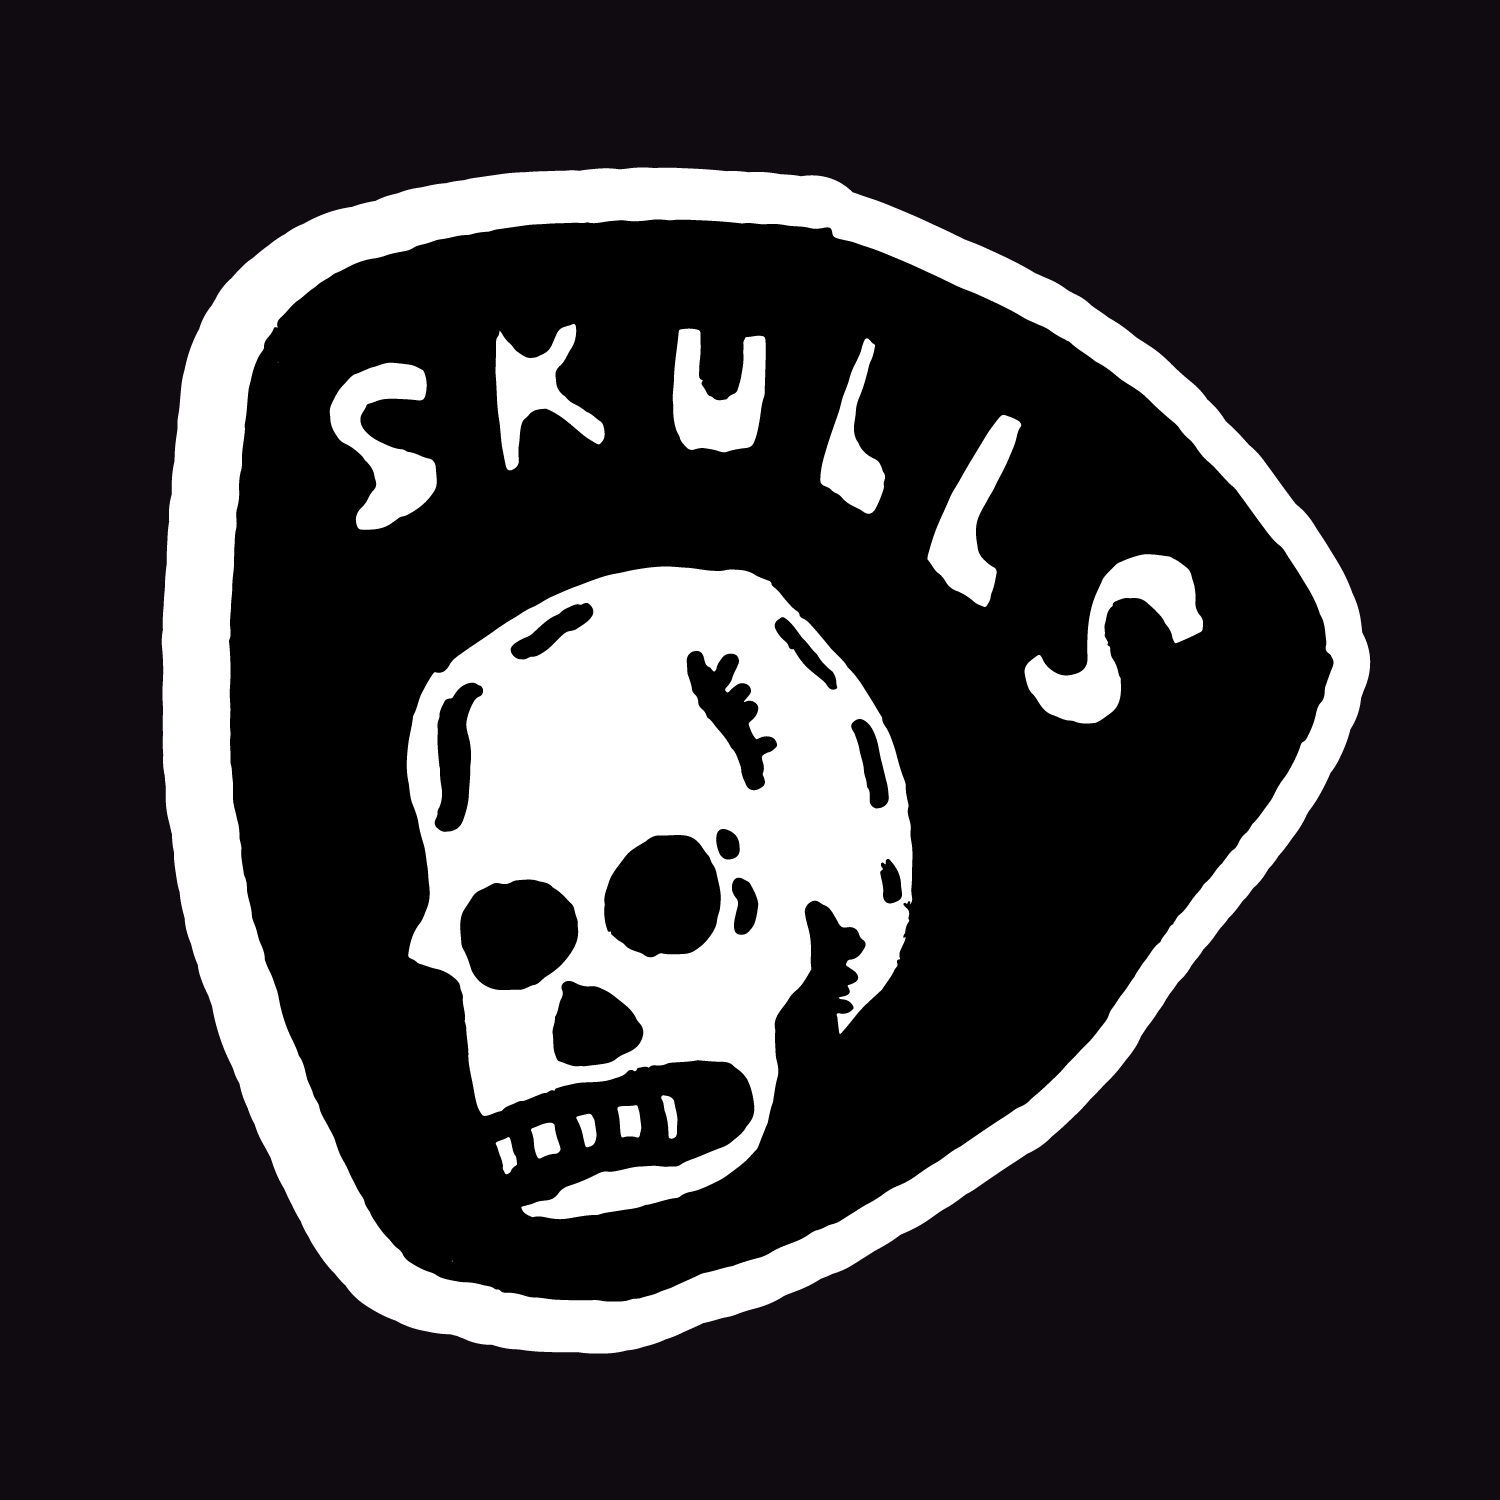 skulls logo illustration